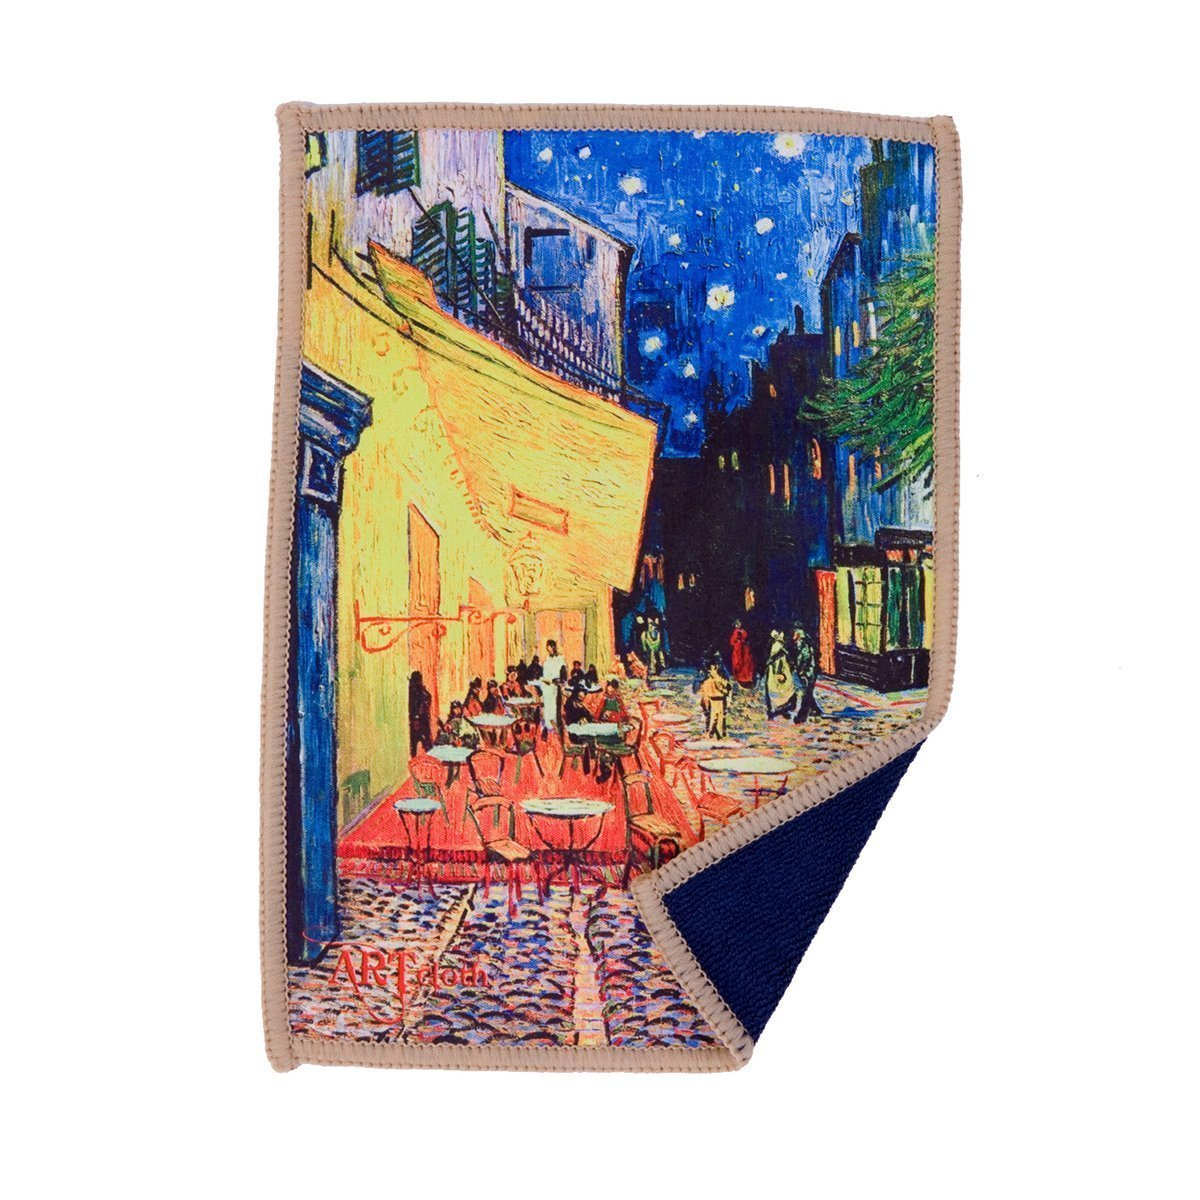 Smartie Microfiber Cleaning Cloth Starry Night Van Gogh 234 Lynktec LTAC-0005